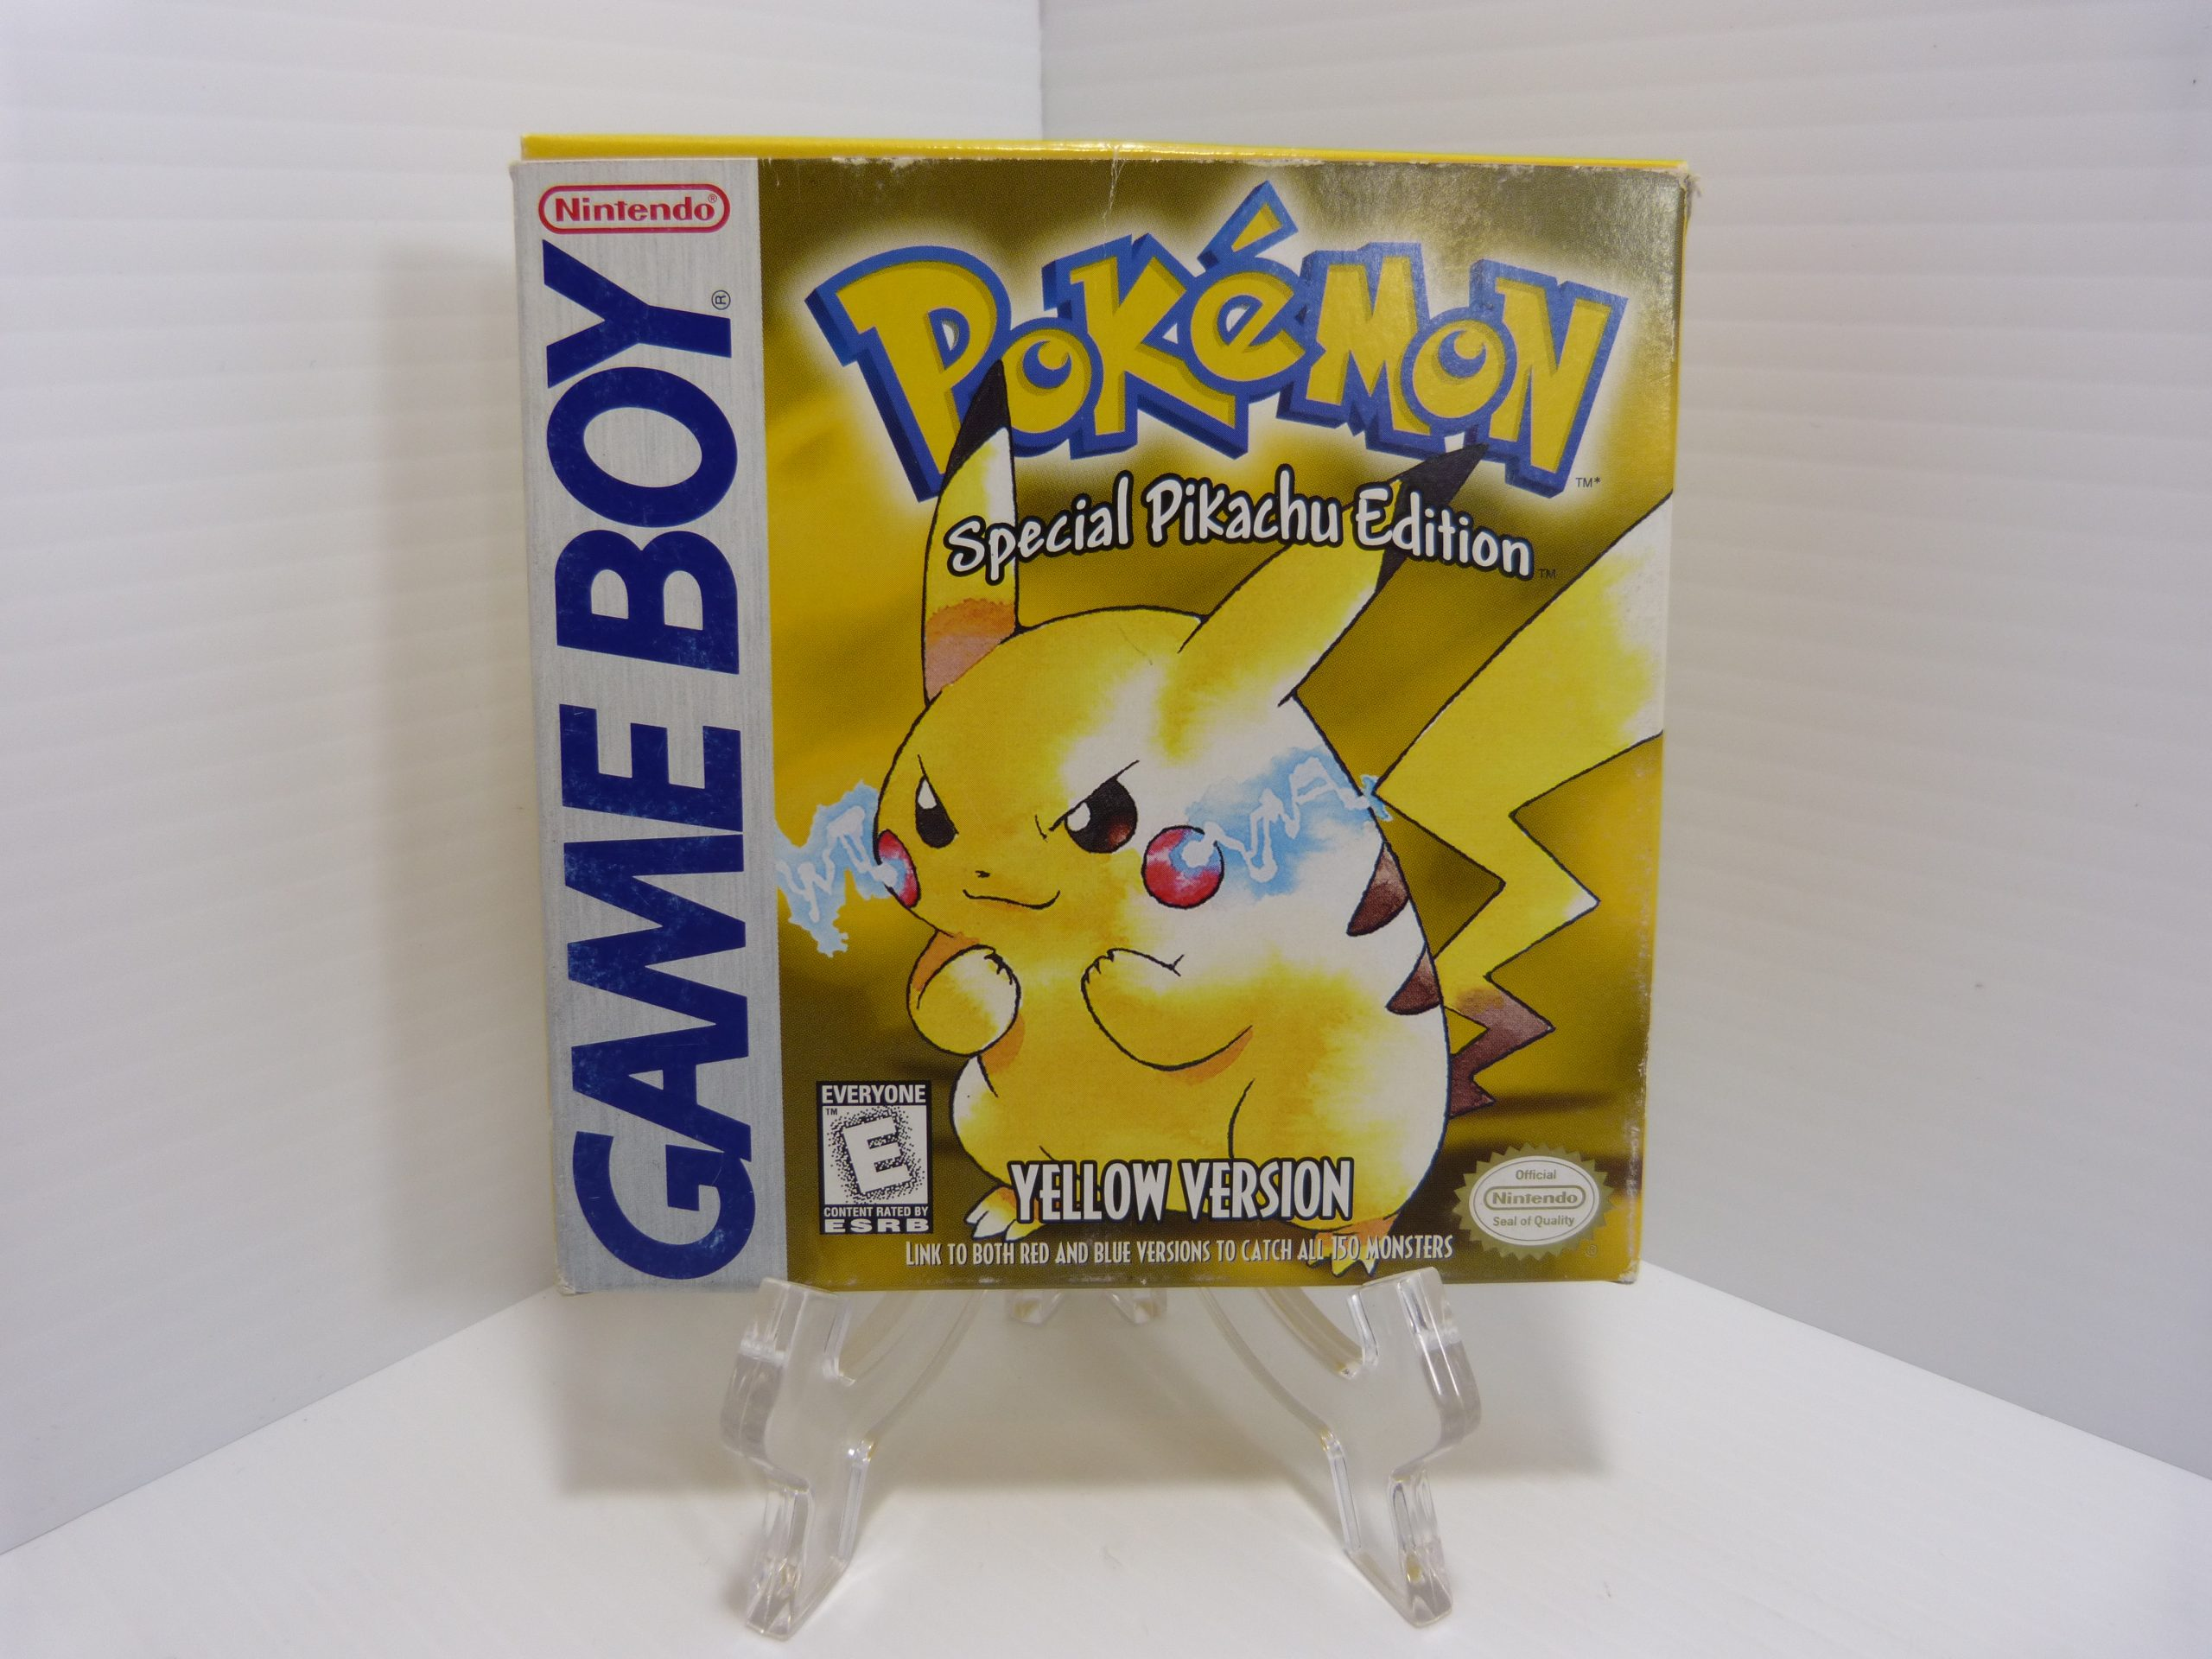 Pokemon Yellow Spicial Pikachu Edition Game Boy Manual Included With Box